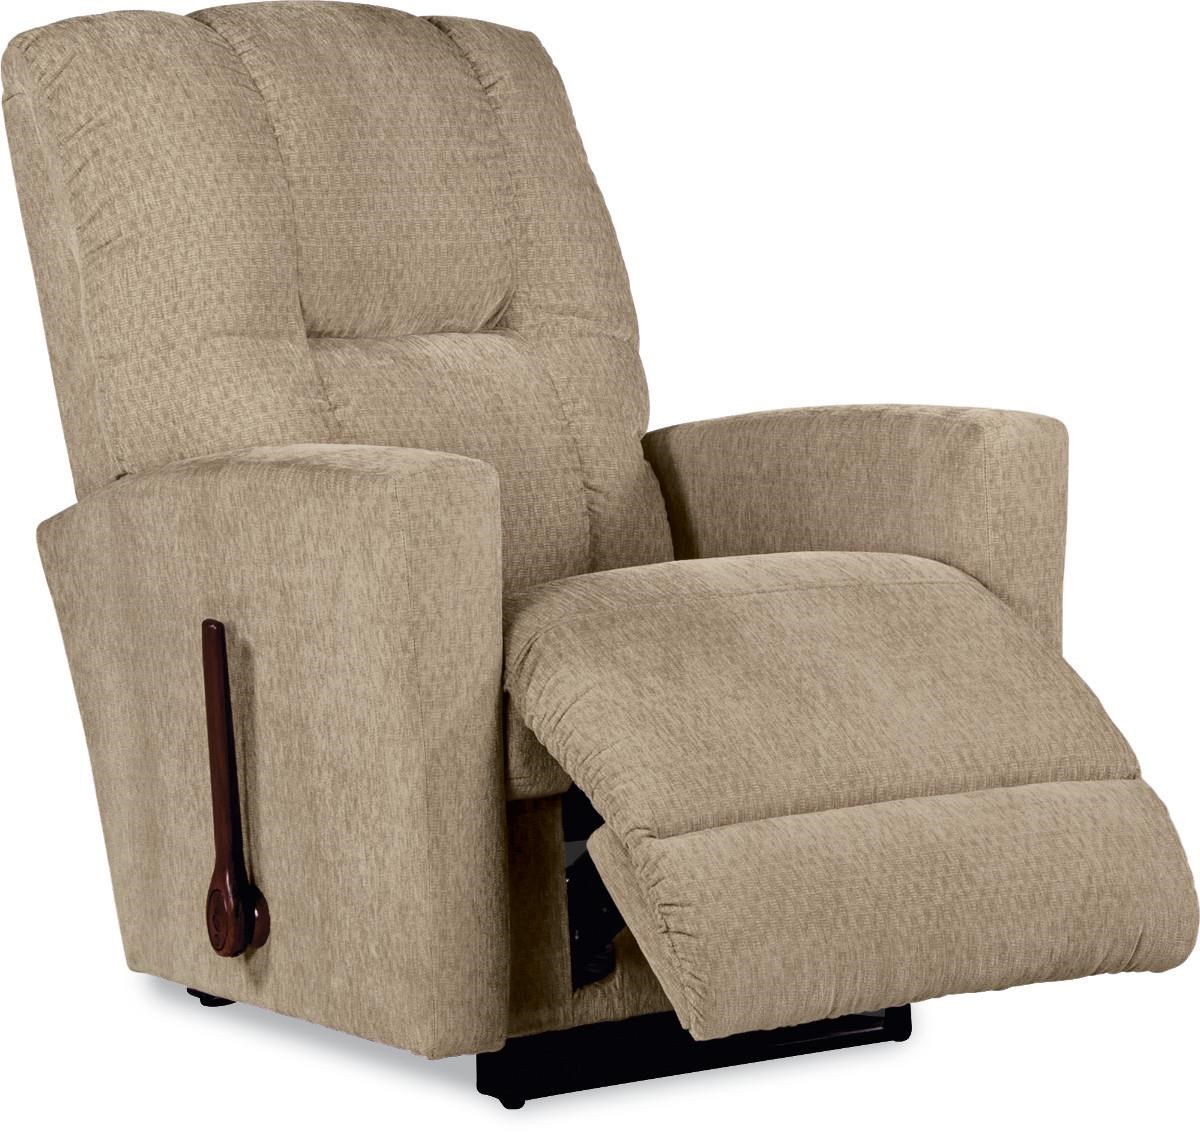 Stocked fabric may vary from manufactureru0027s photo.  sc 1 st  Johnny Janosik & La-Z-Boy Recliners Casey RECLINA-ROCKER® Recliner - Johnny Janosik ... islam-shia.org